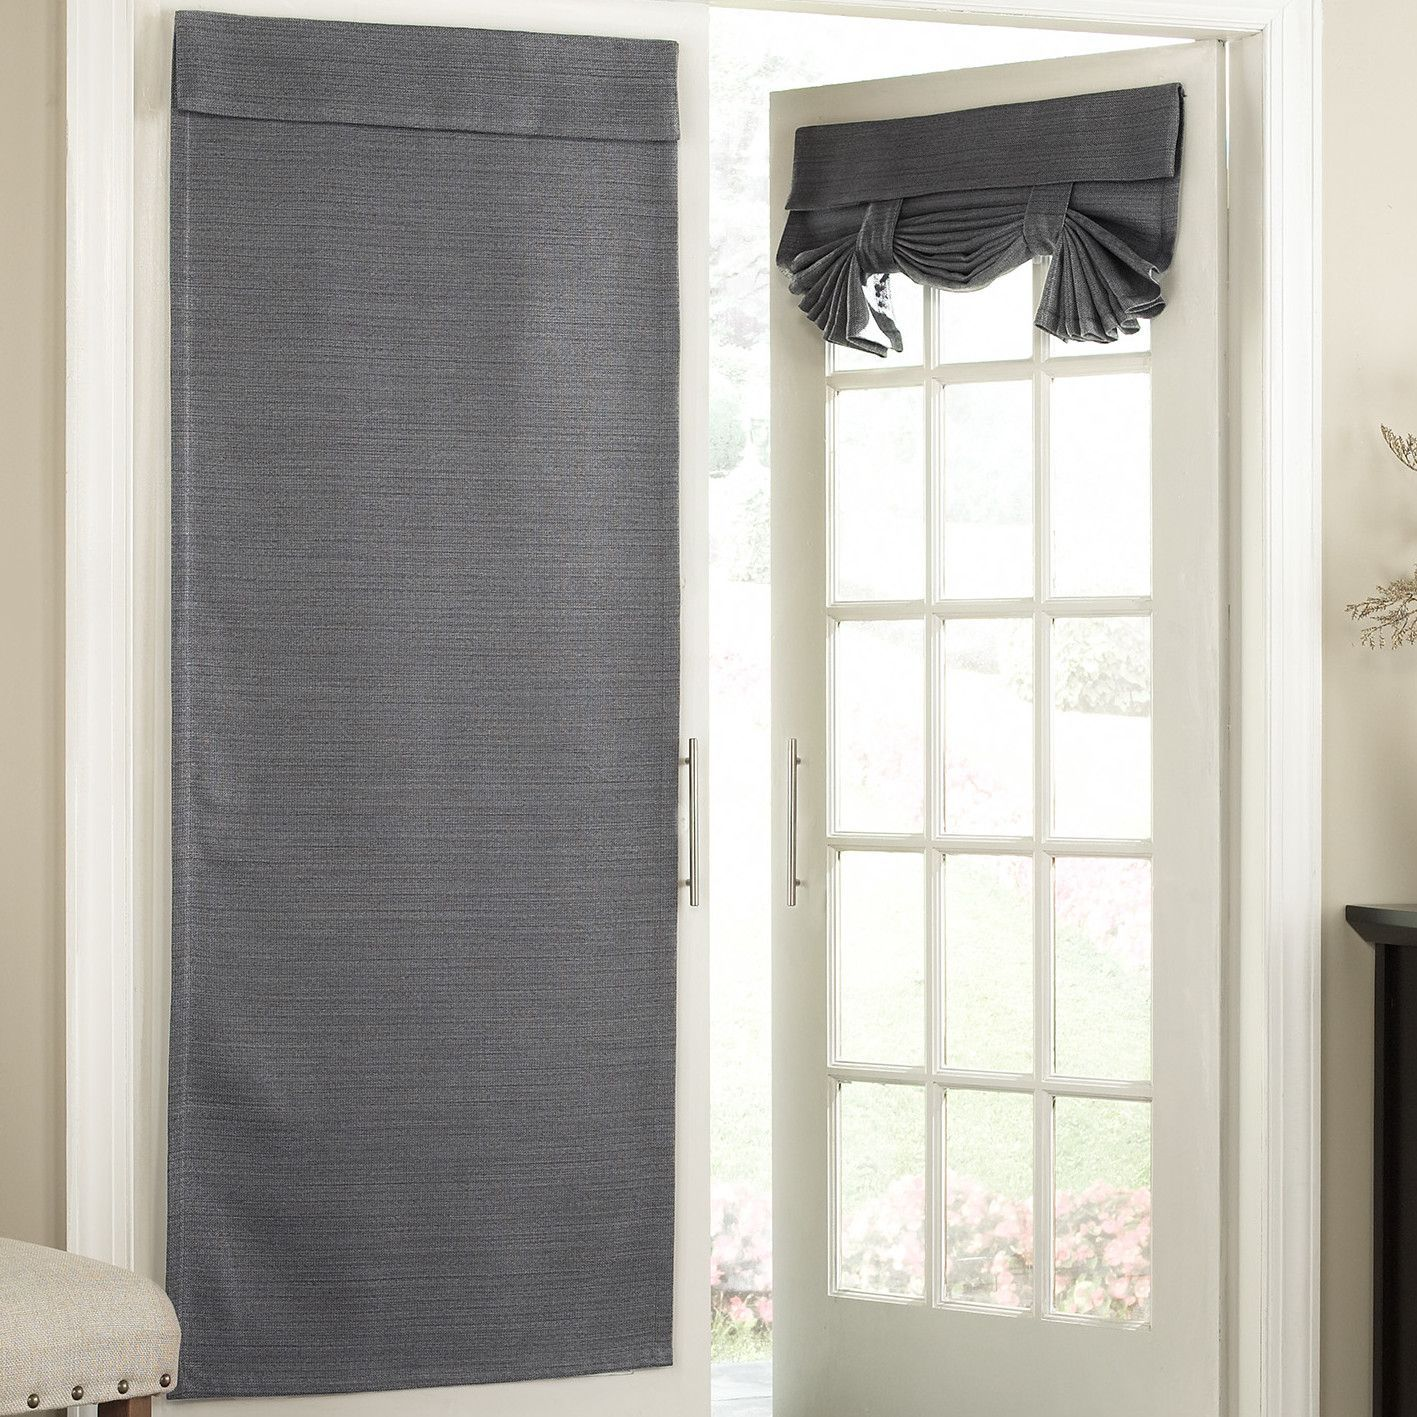 texnoklimat x panels design curtain side panel front com custom ideas superior curtains nice door